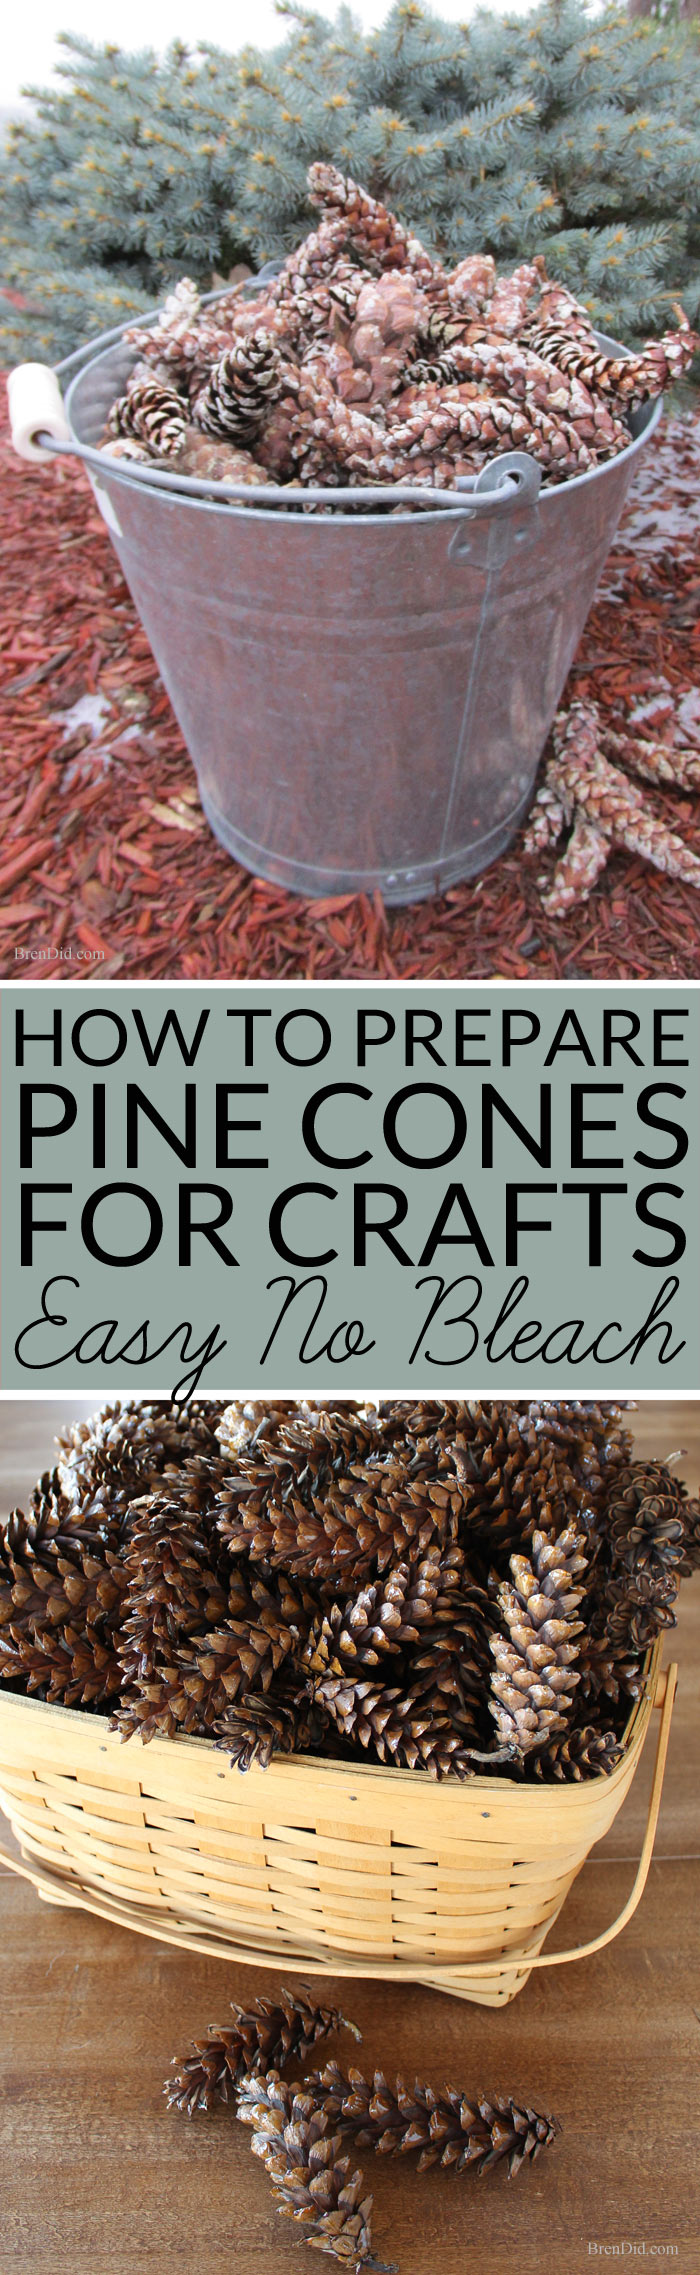 Pine cones collected outdoors can bring mold, mildew or bugs into your home unless they are correctly prepared for indoor use. Learn how to prepare pine cones for crafts. No bleach. All-natural. Free!